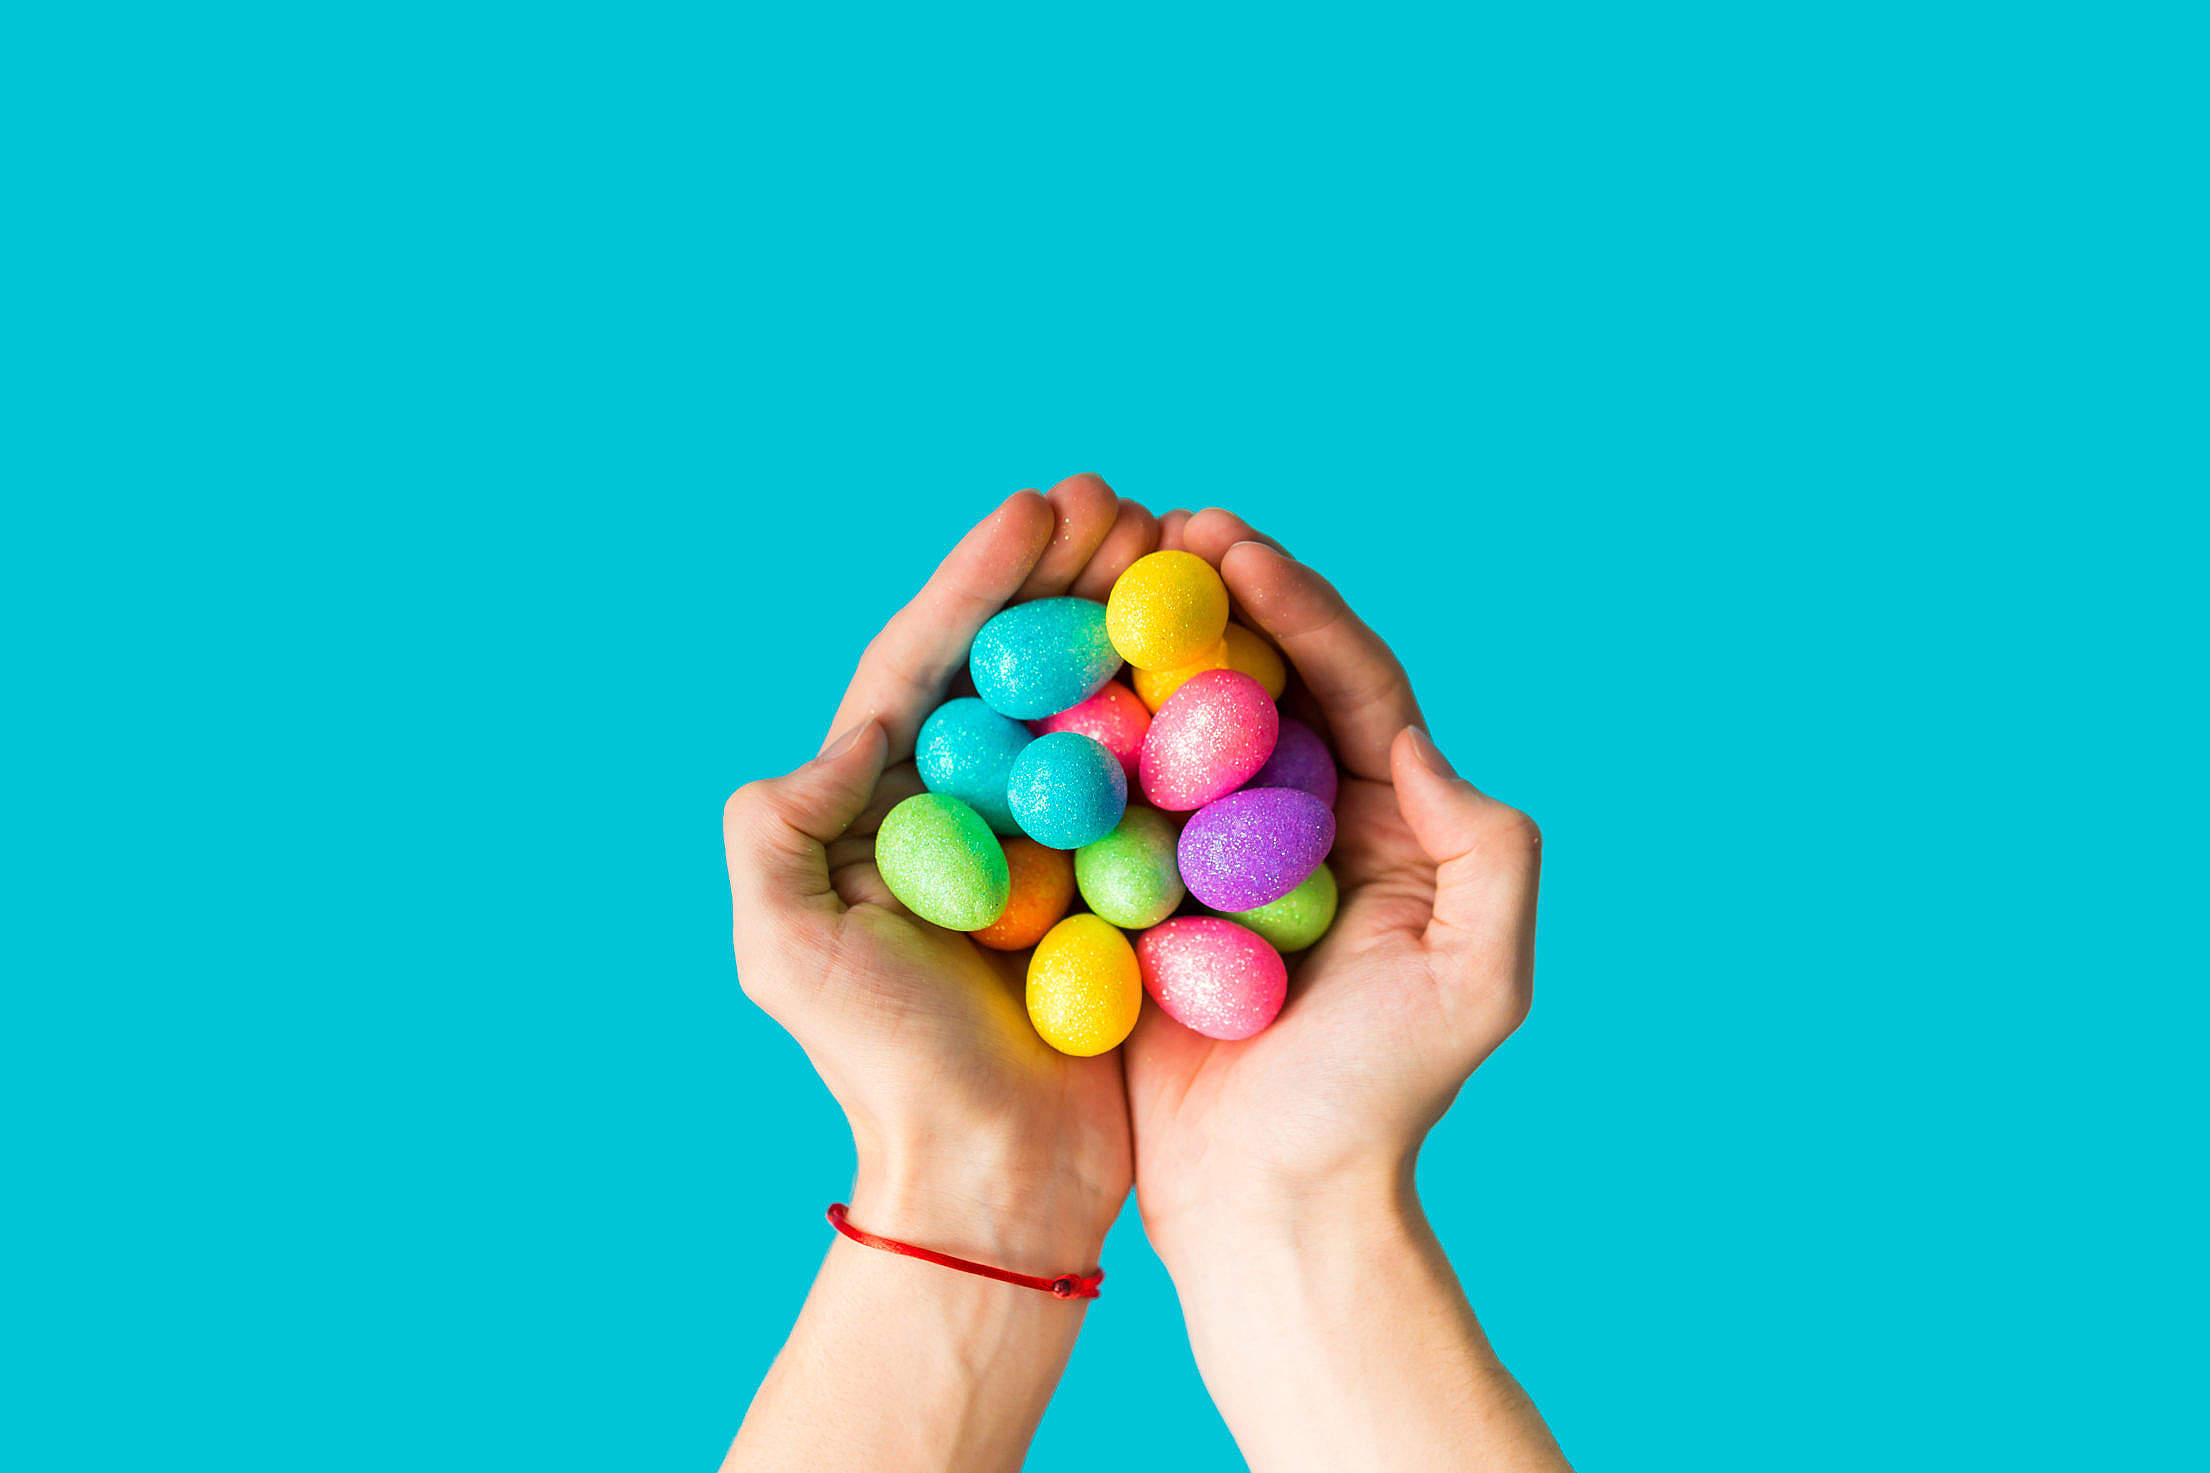 Handful of Glittering Easter Eggs Free Stock Photo